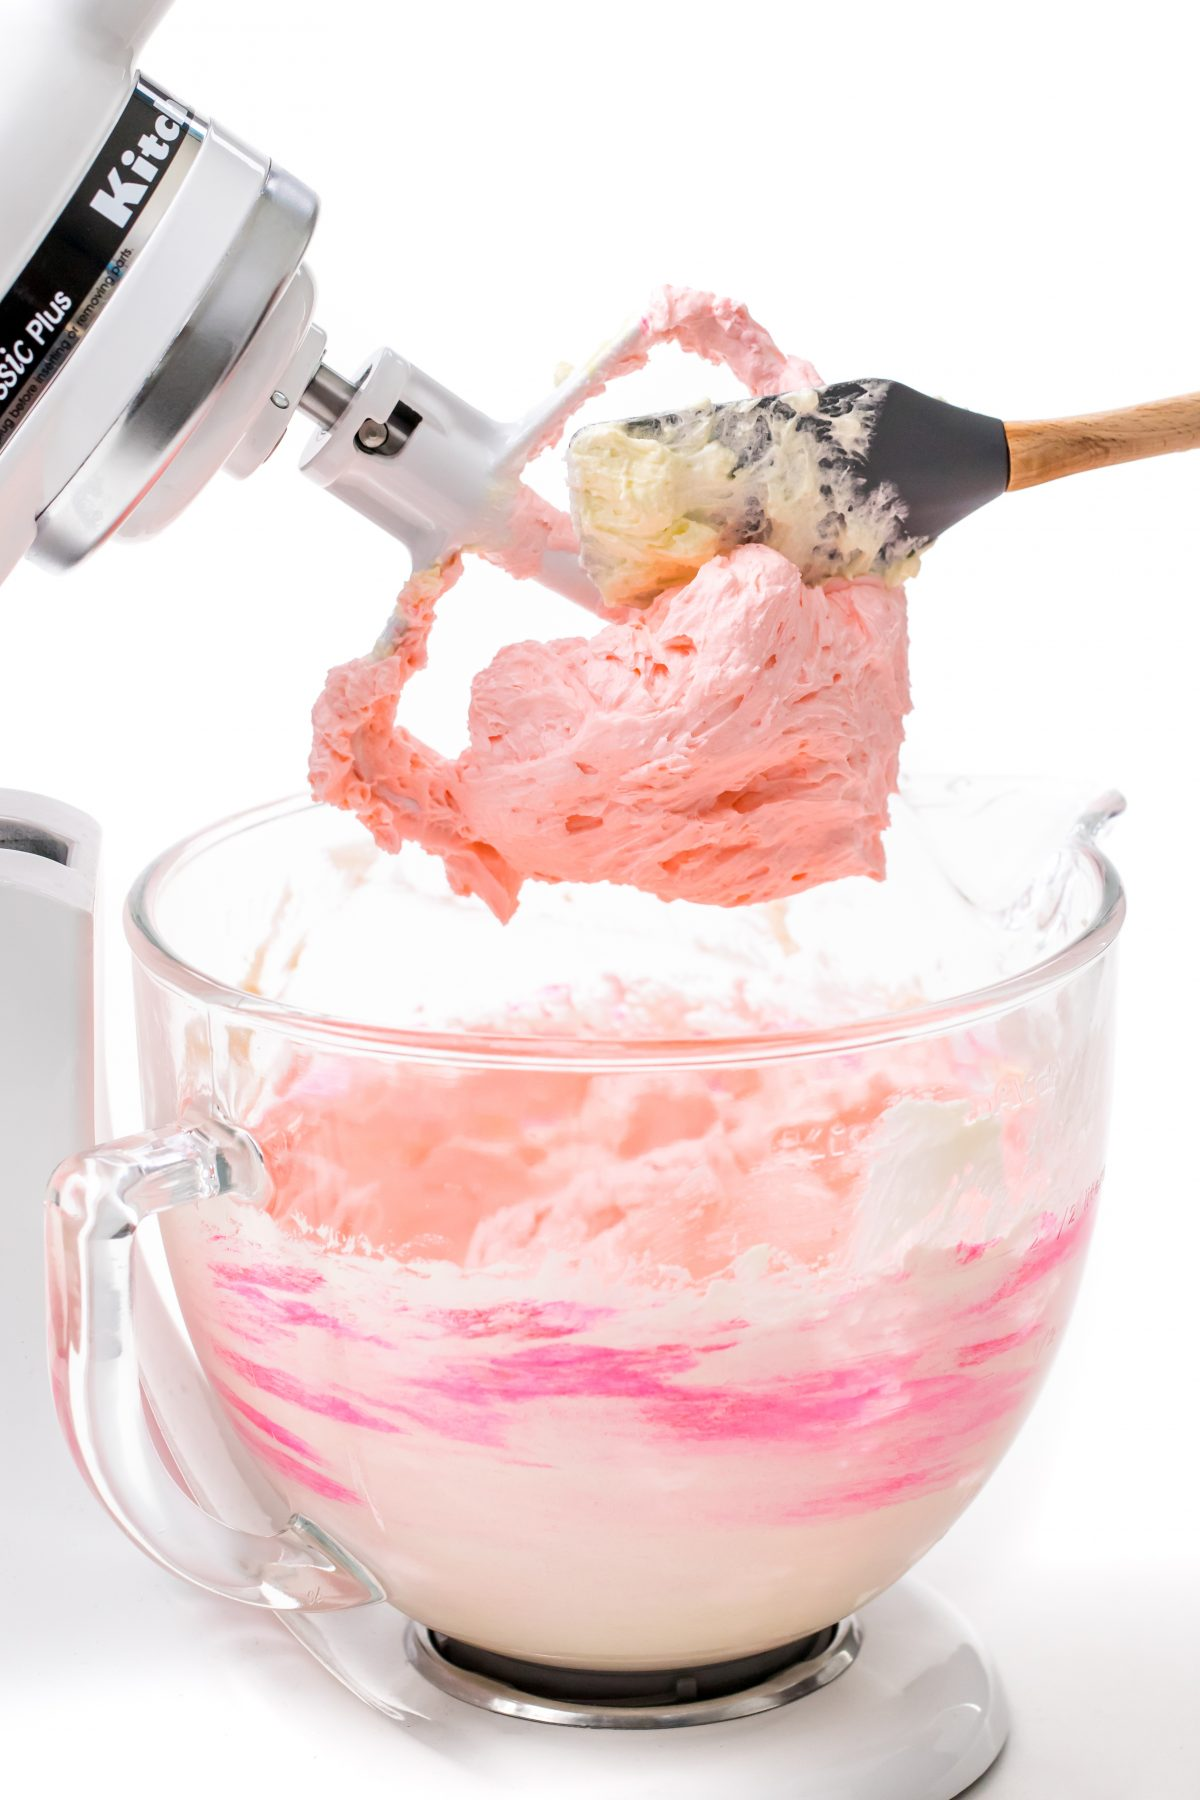 How To Make Pink Frosting With Food Coloring